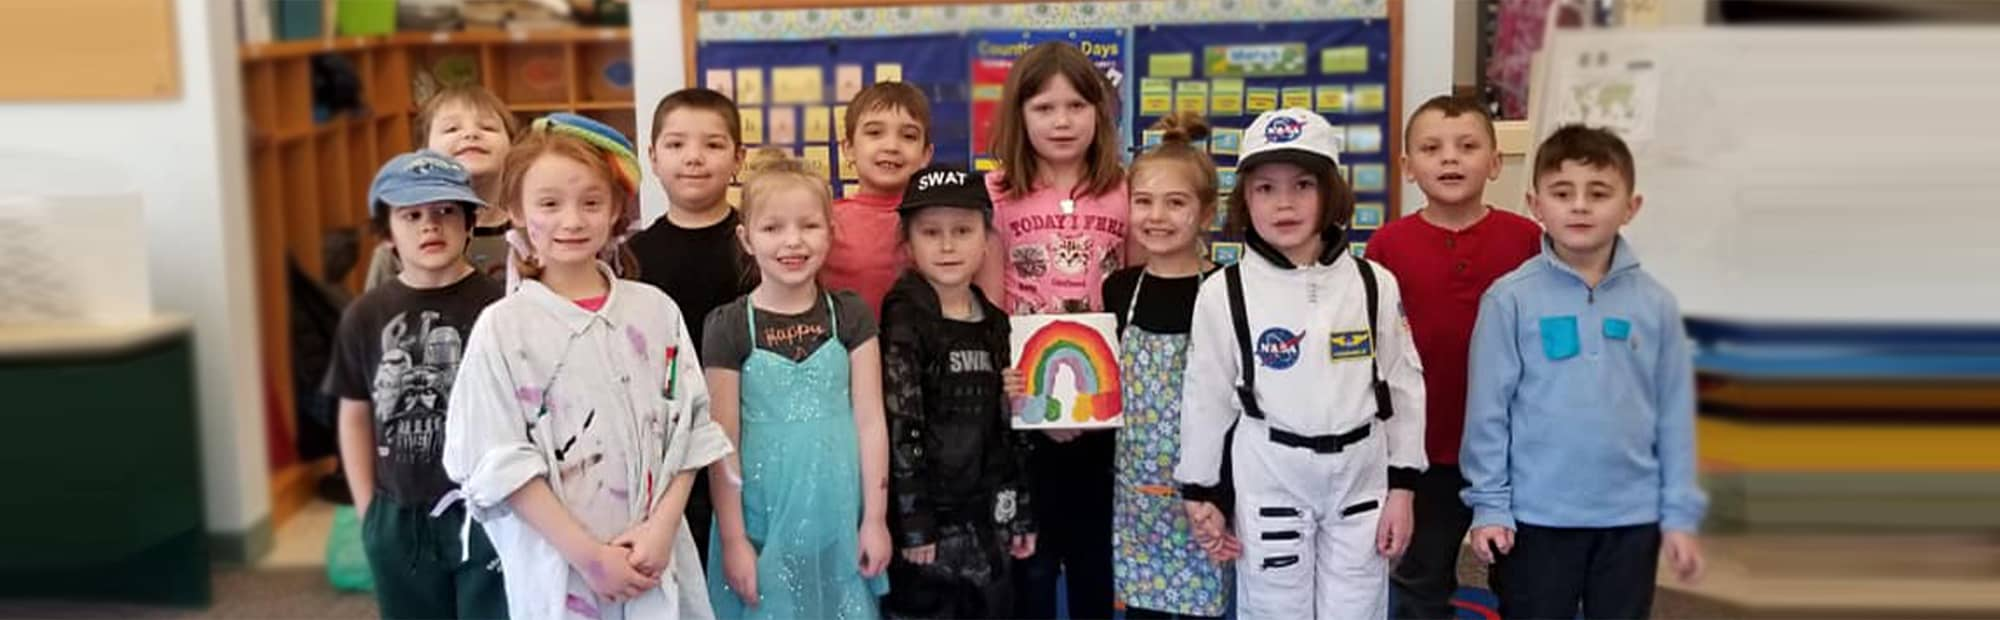 Smiling students in costumes